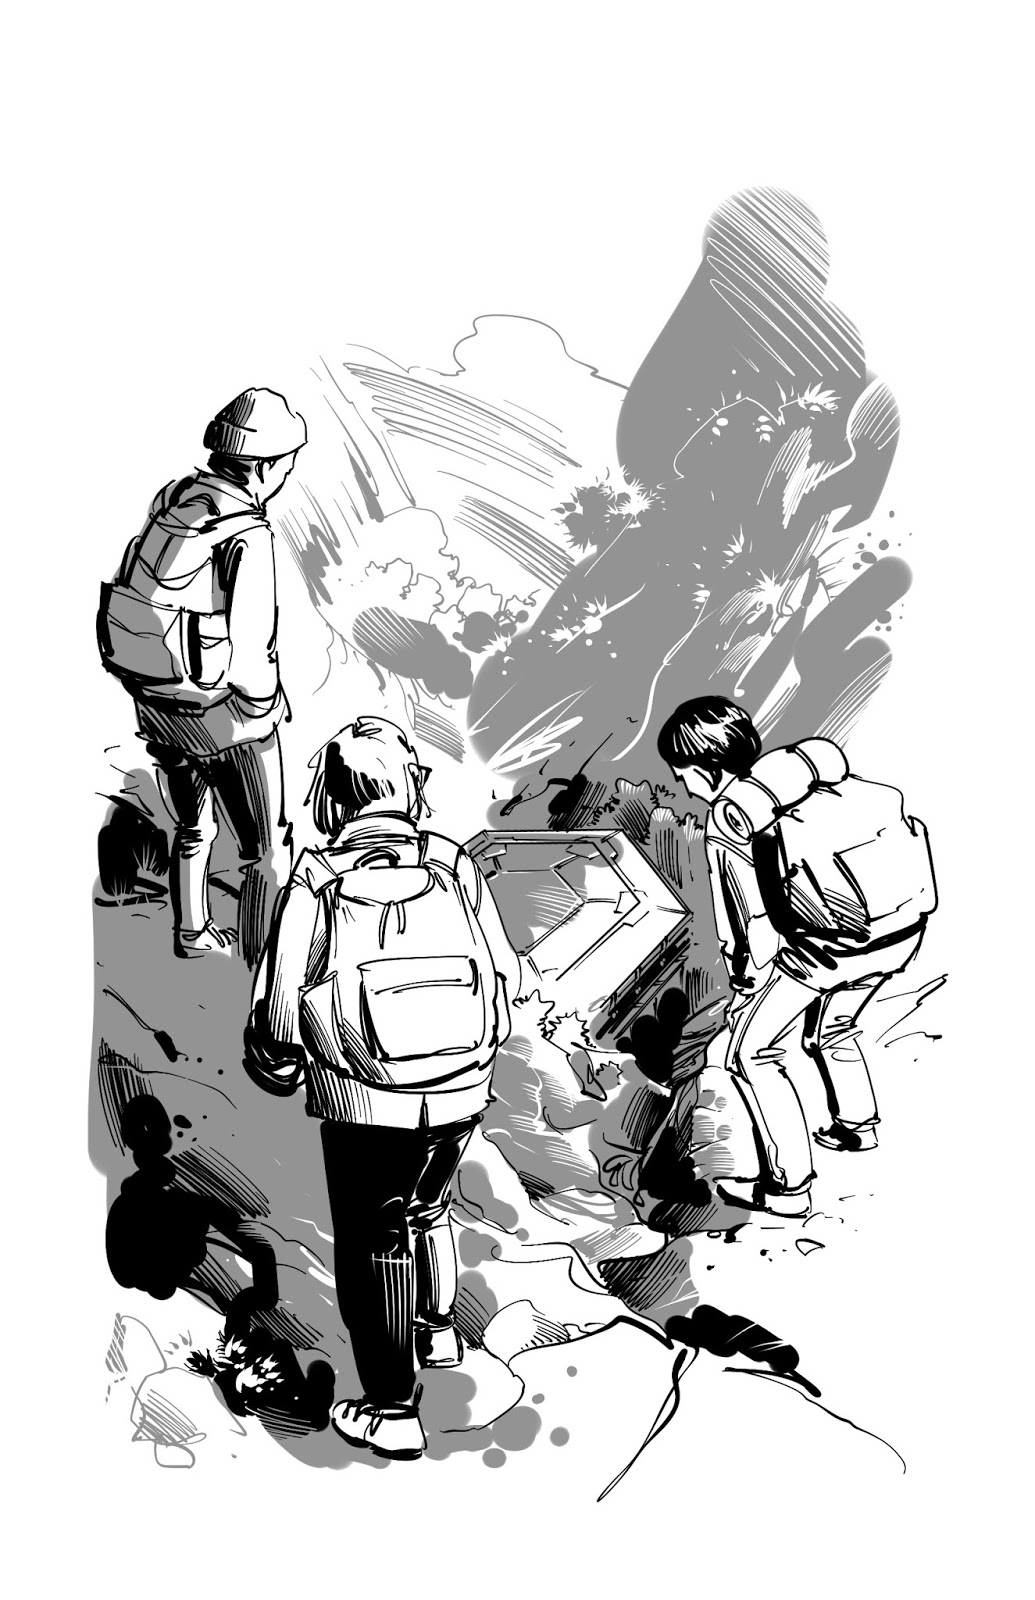 science fiction story illustration